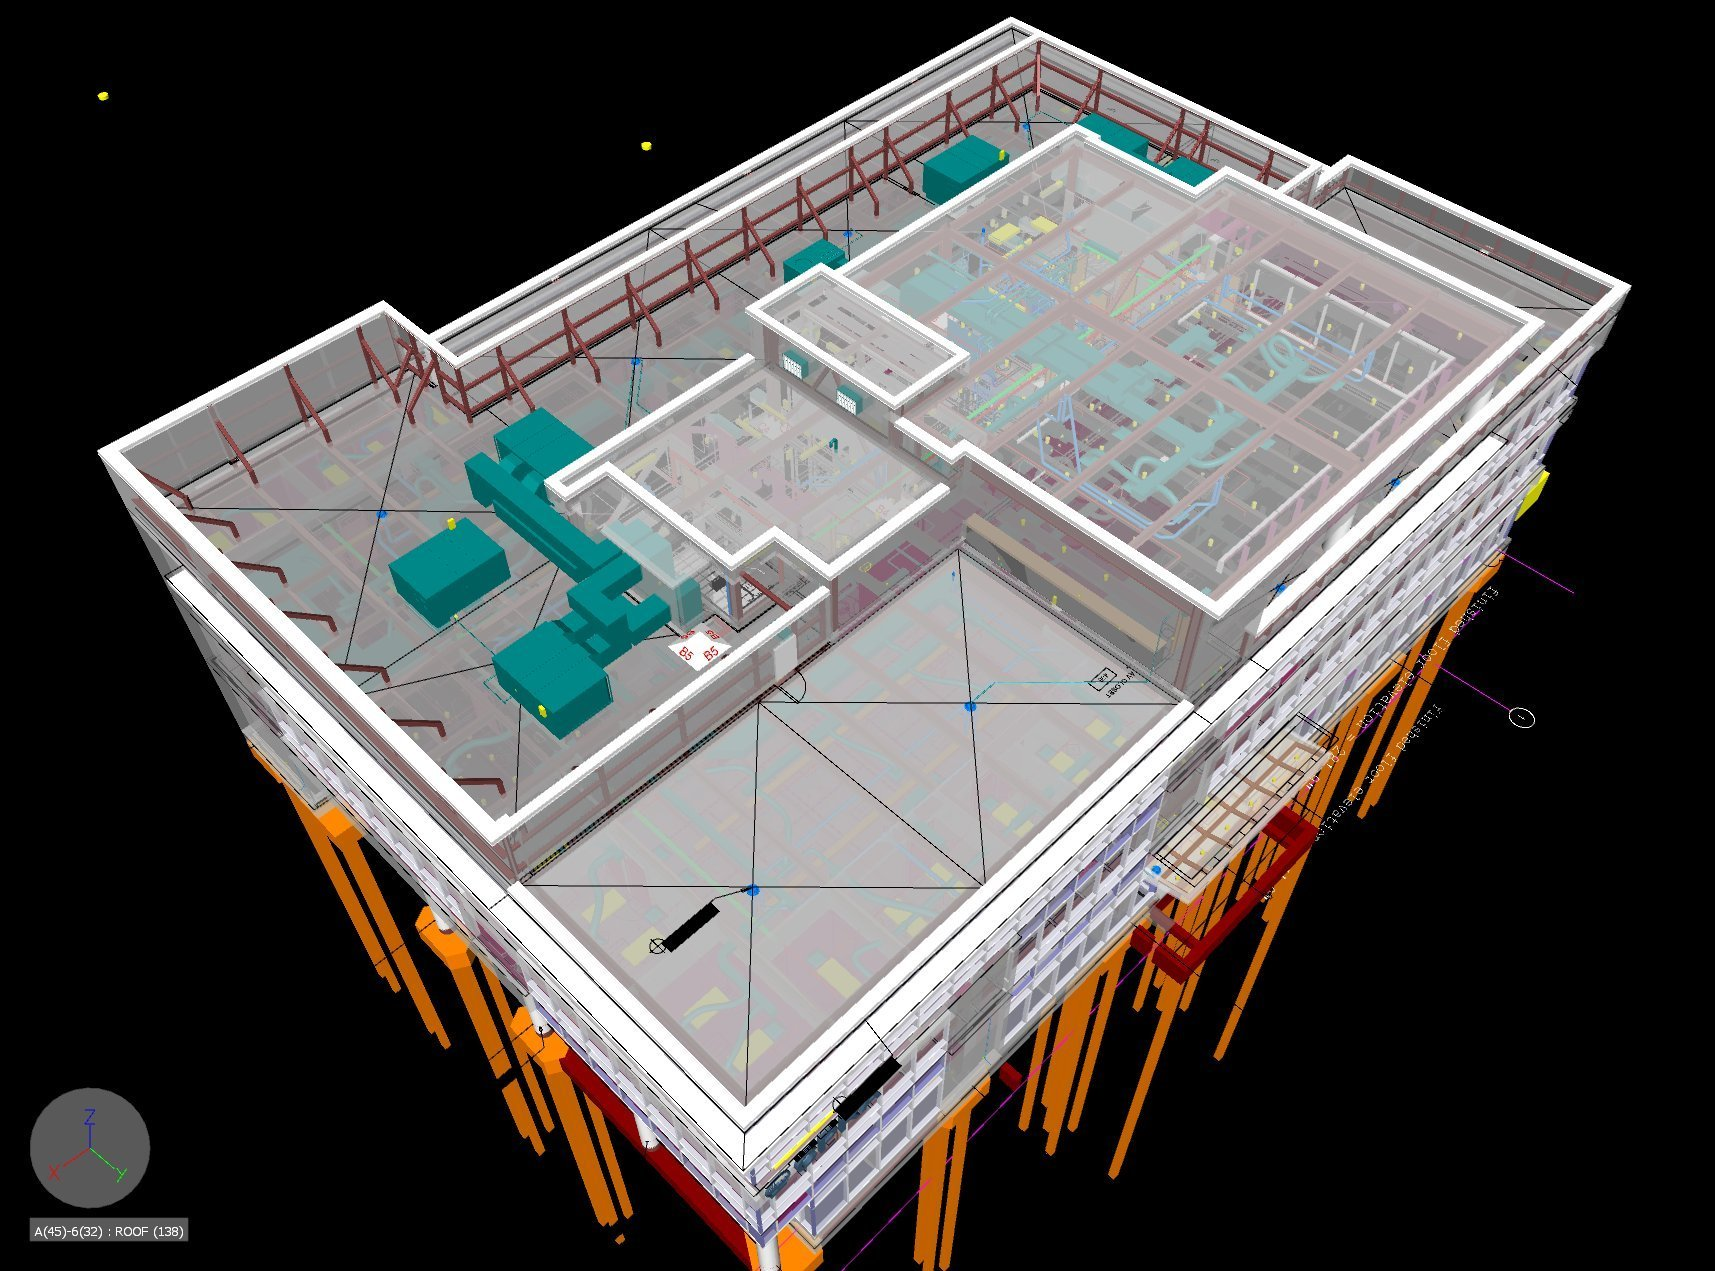 3d modeling architectural rendering services hudson oh view all